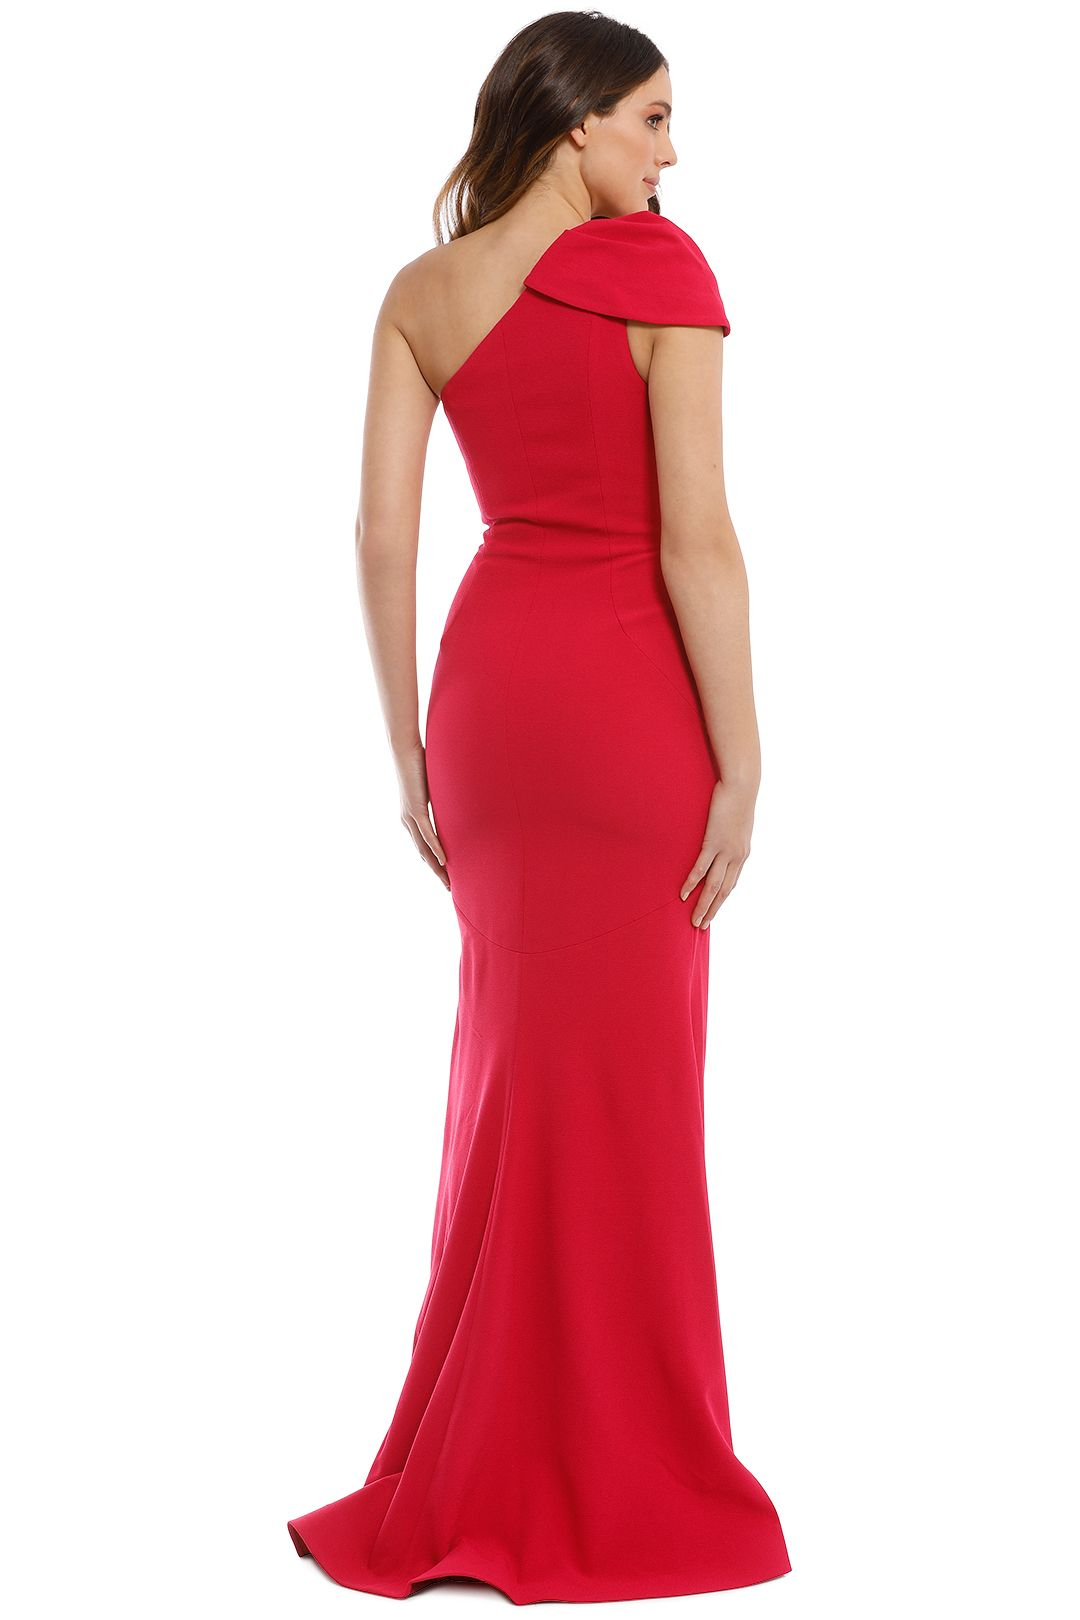 Rebecca Vallance - Poppy Gown - Red - Back